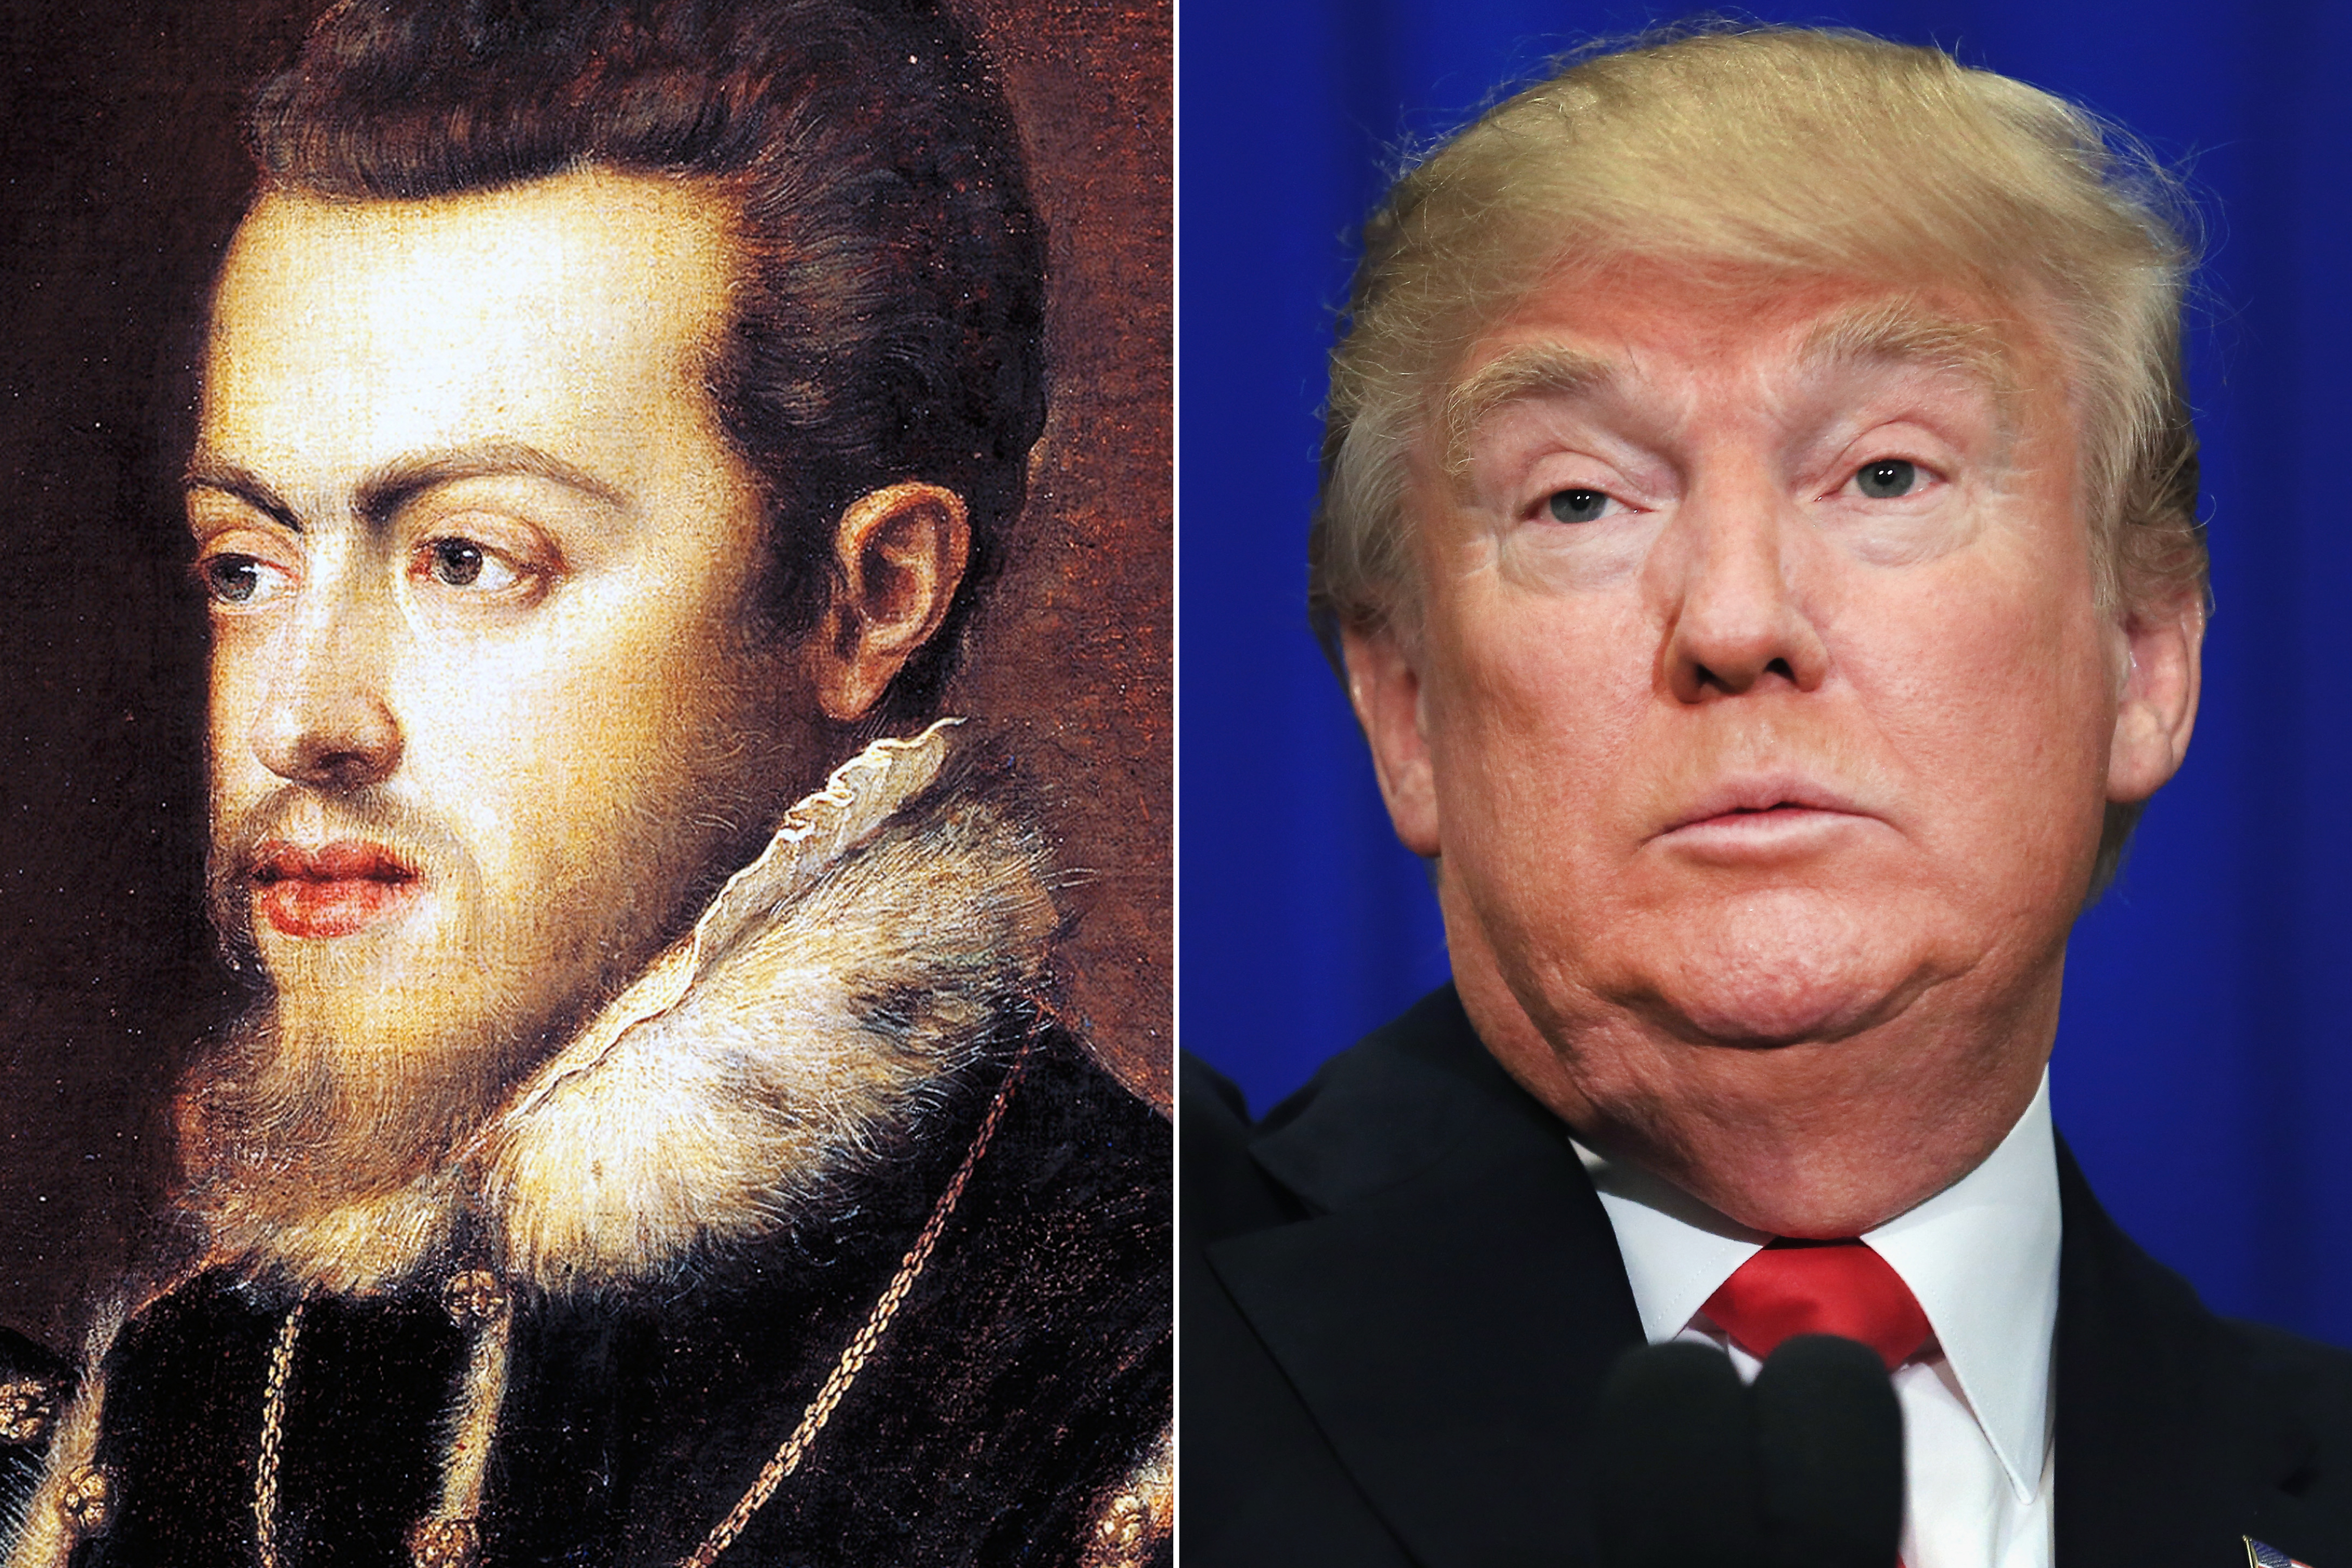 Painting by Titian, of Philip II of Spain (L); Donald Trump speaks in Fort Worth, TX, on Feb. 26, 2016.